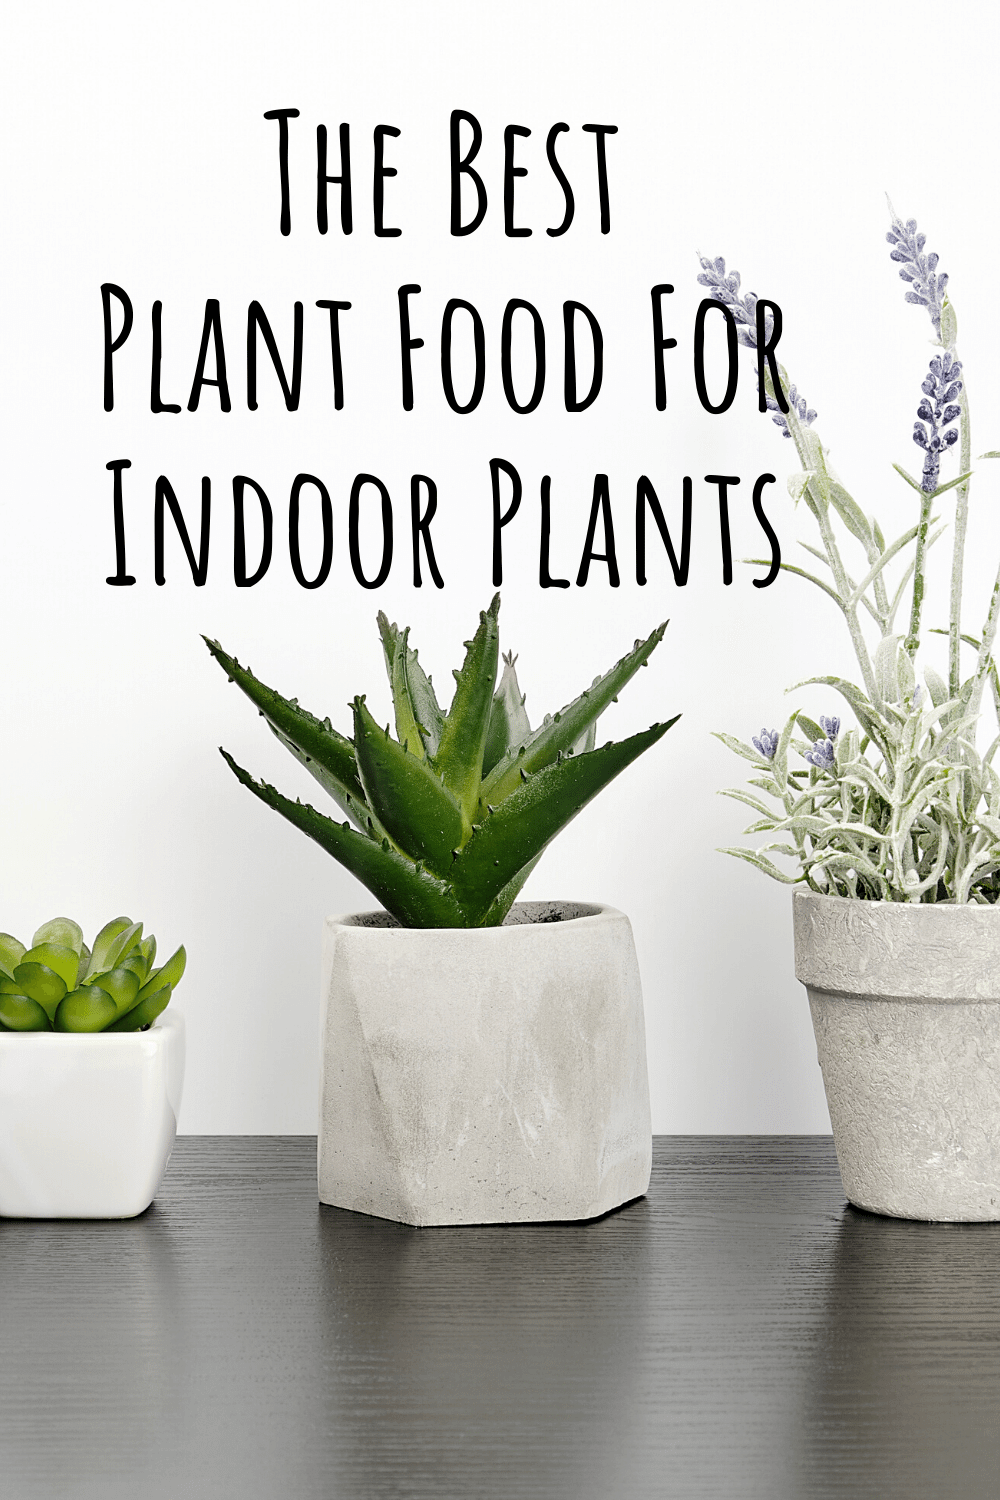 The 10 Best Plant Food For Indoor Plants In 2020 Organic Plant Food Plant Food Plants